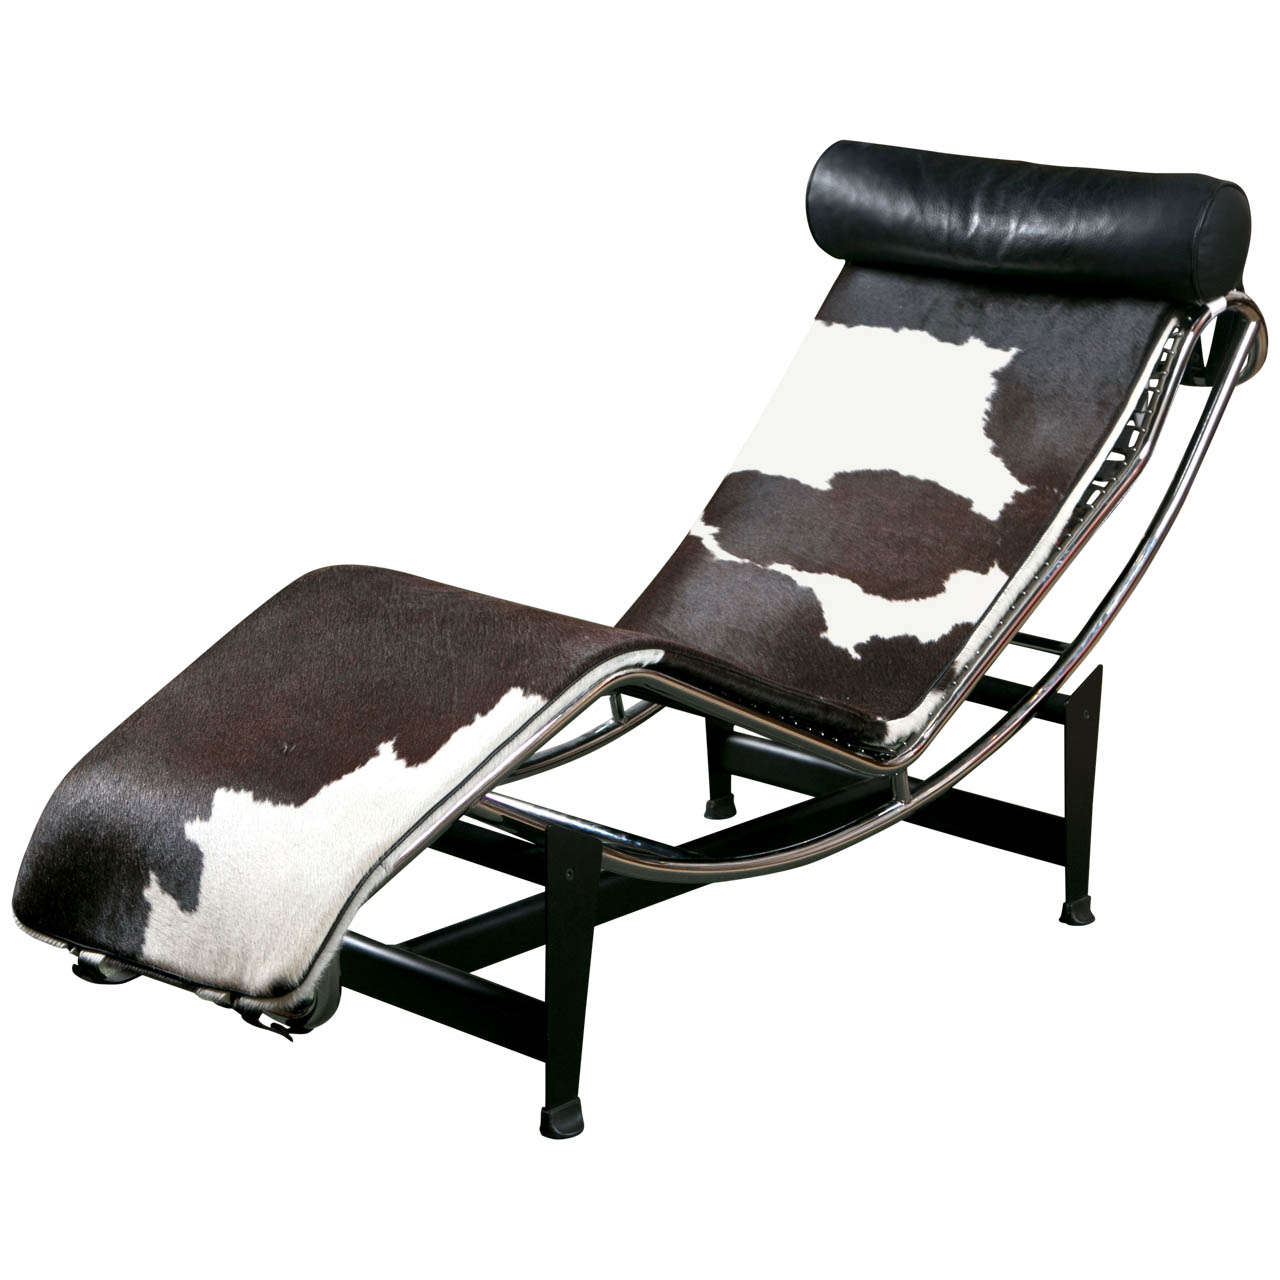 le corbusier chaise longue at 1stdibs. Black Bedroom Furniture Sets. Home Design Ideas